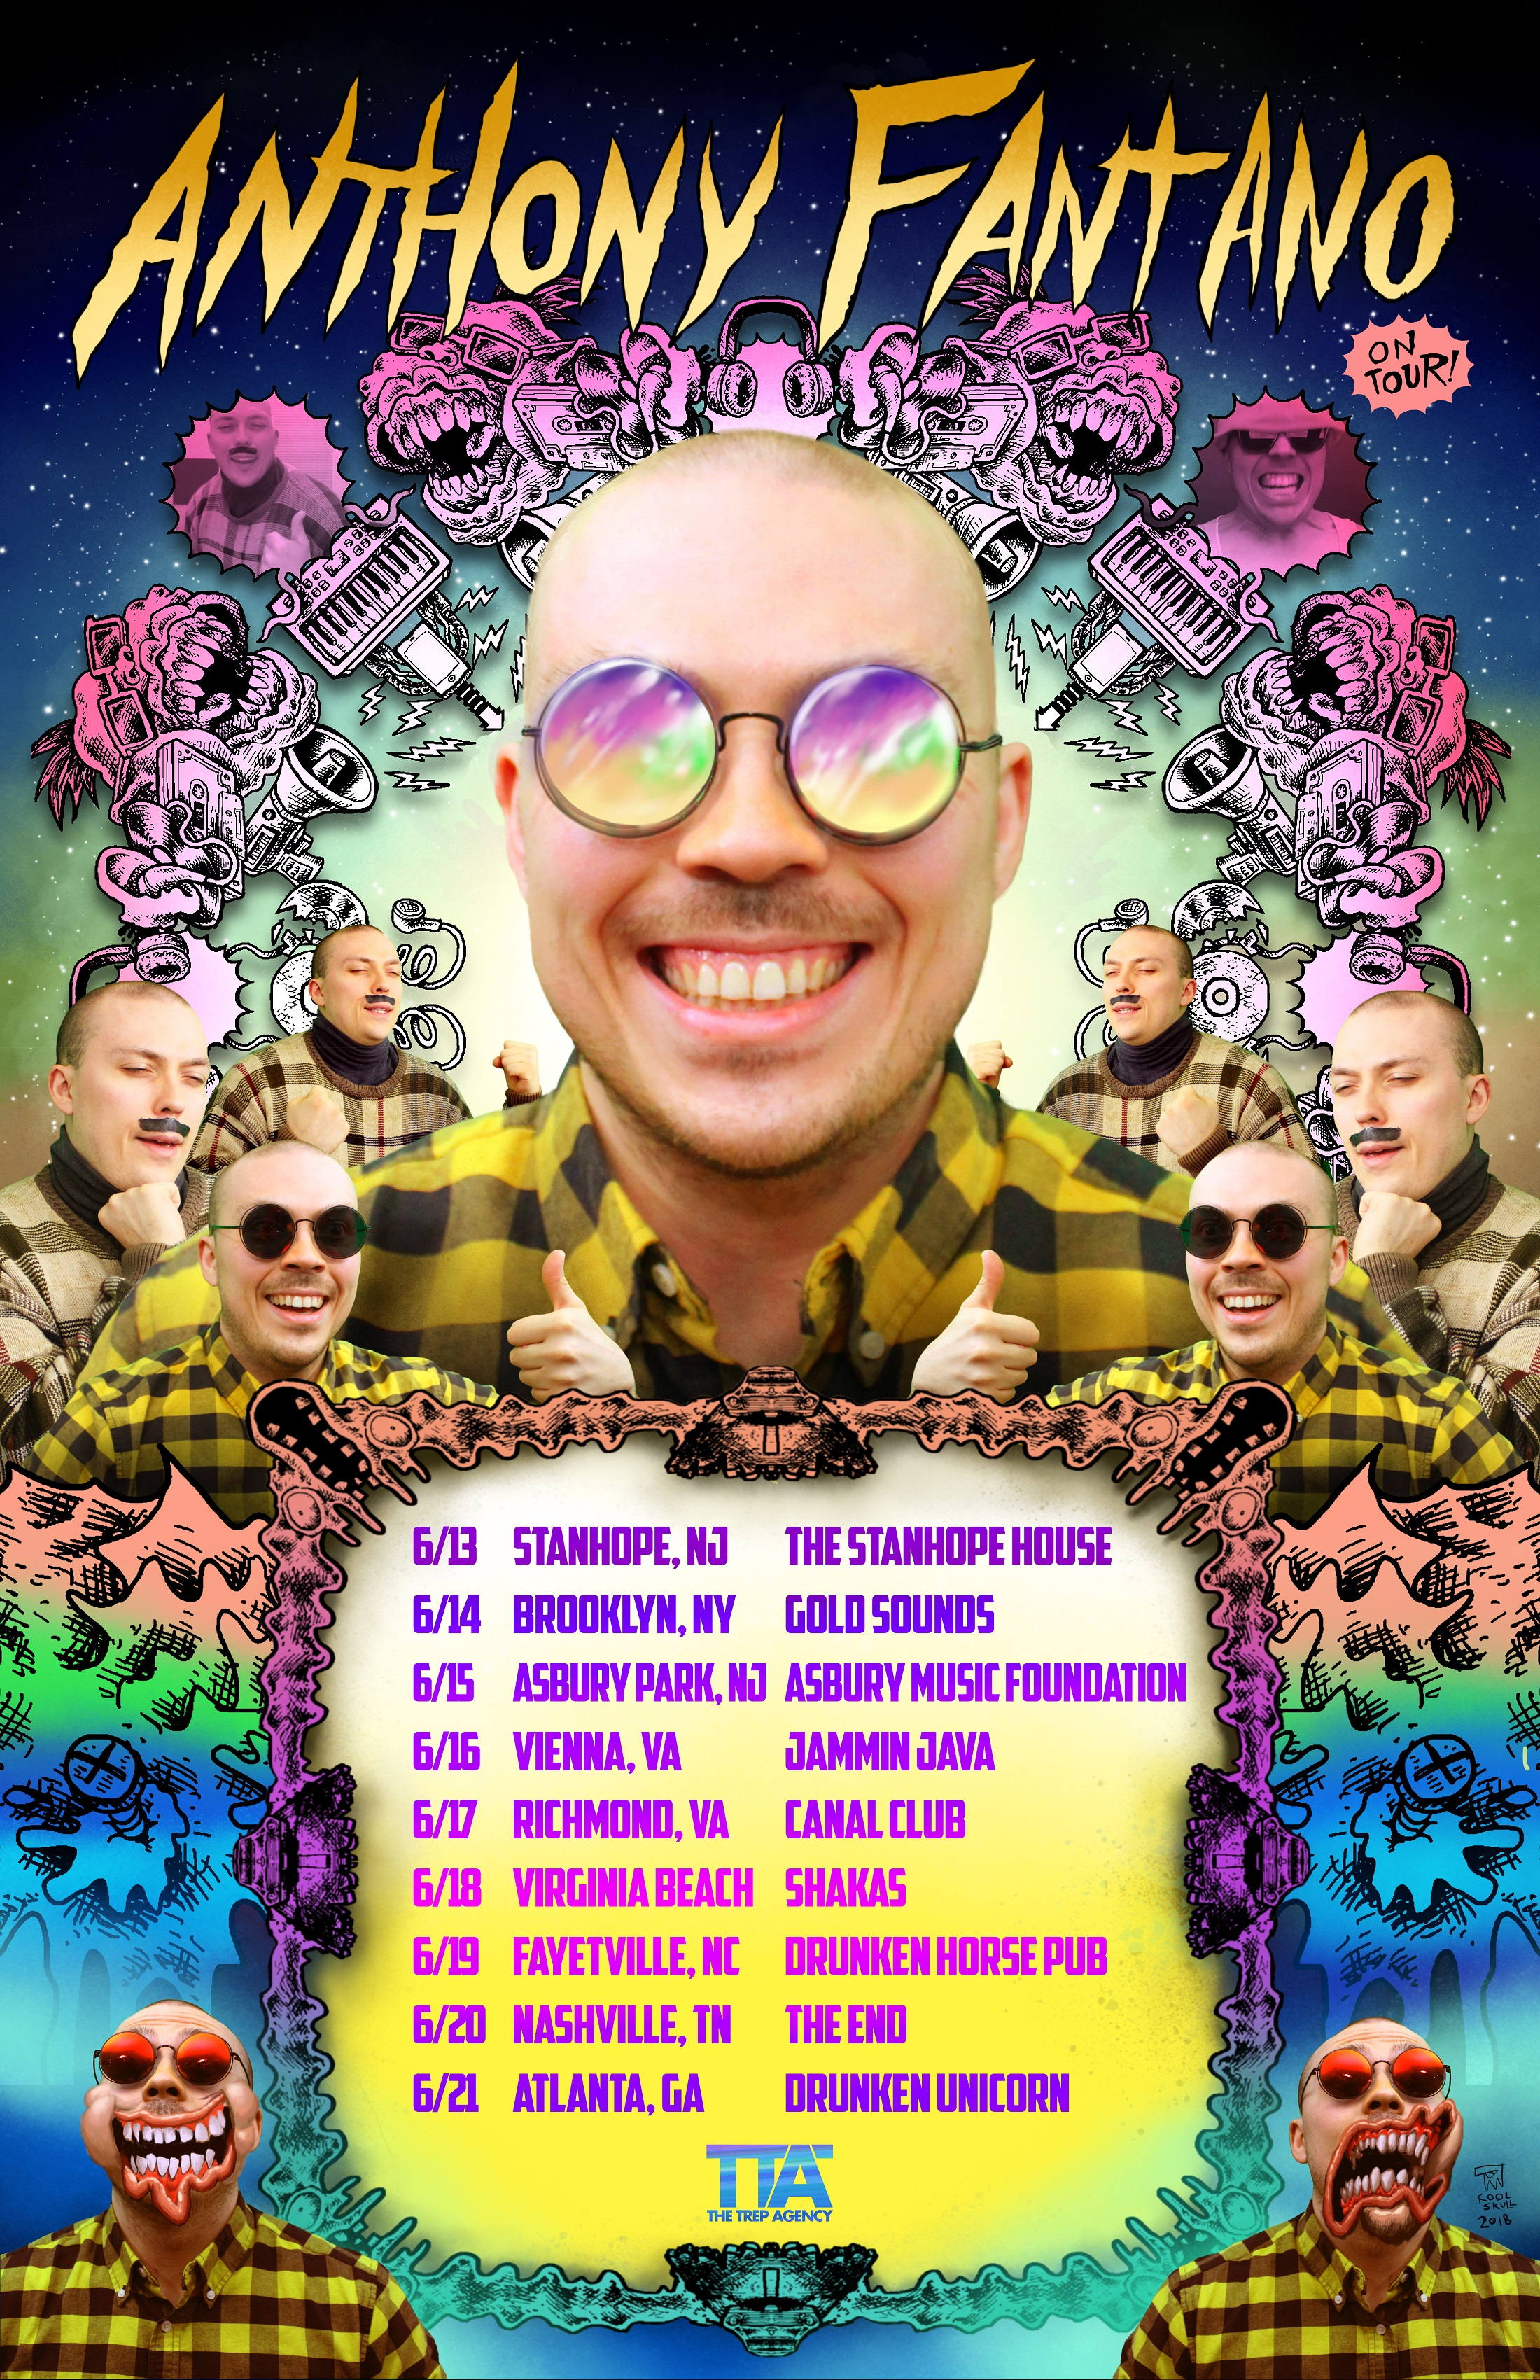 ANTHONY FANTANO VIP 6/23- GREENVILLE, SC